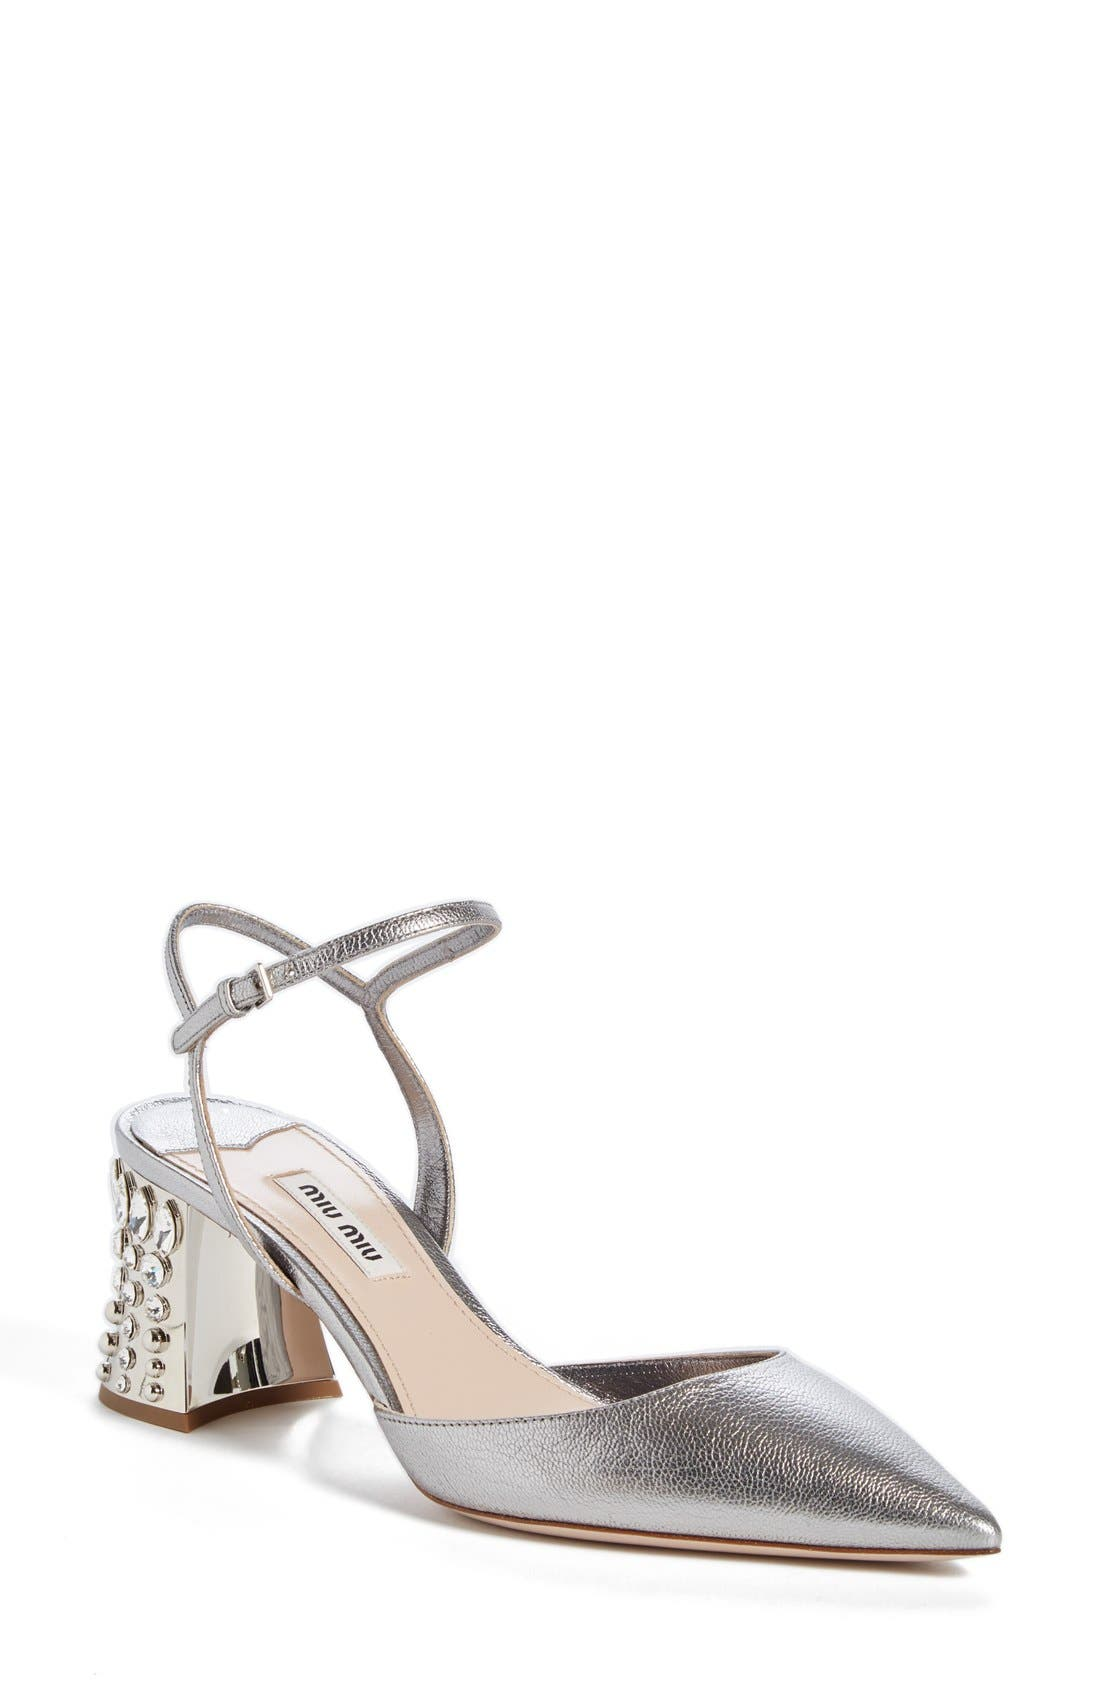 Jeweled Heel Ankle Strap Pump,                             Alternate thumbnail 2, color,                             043